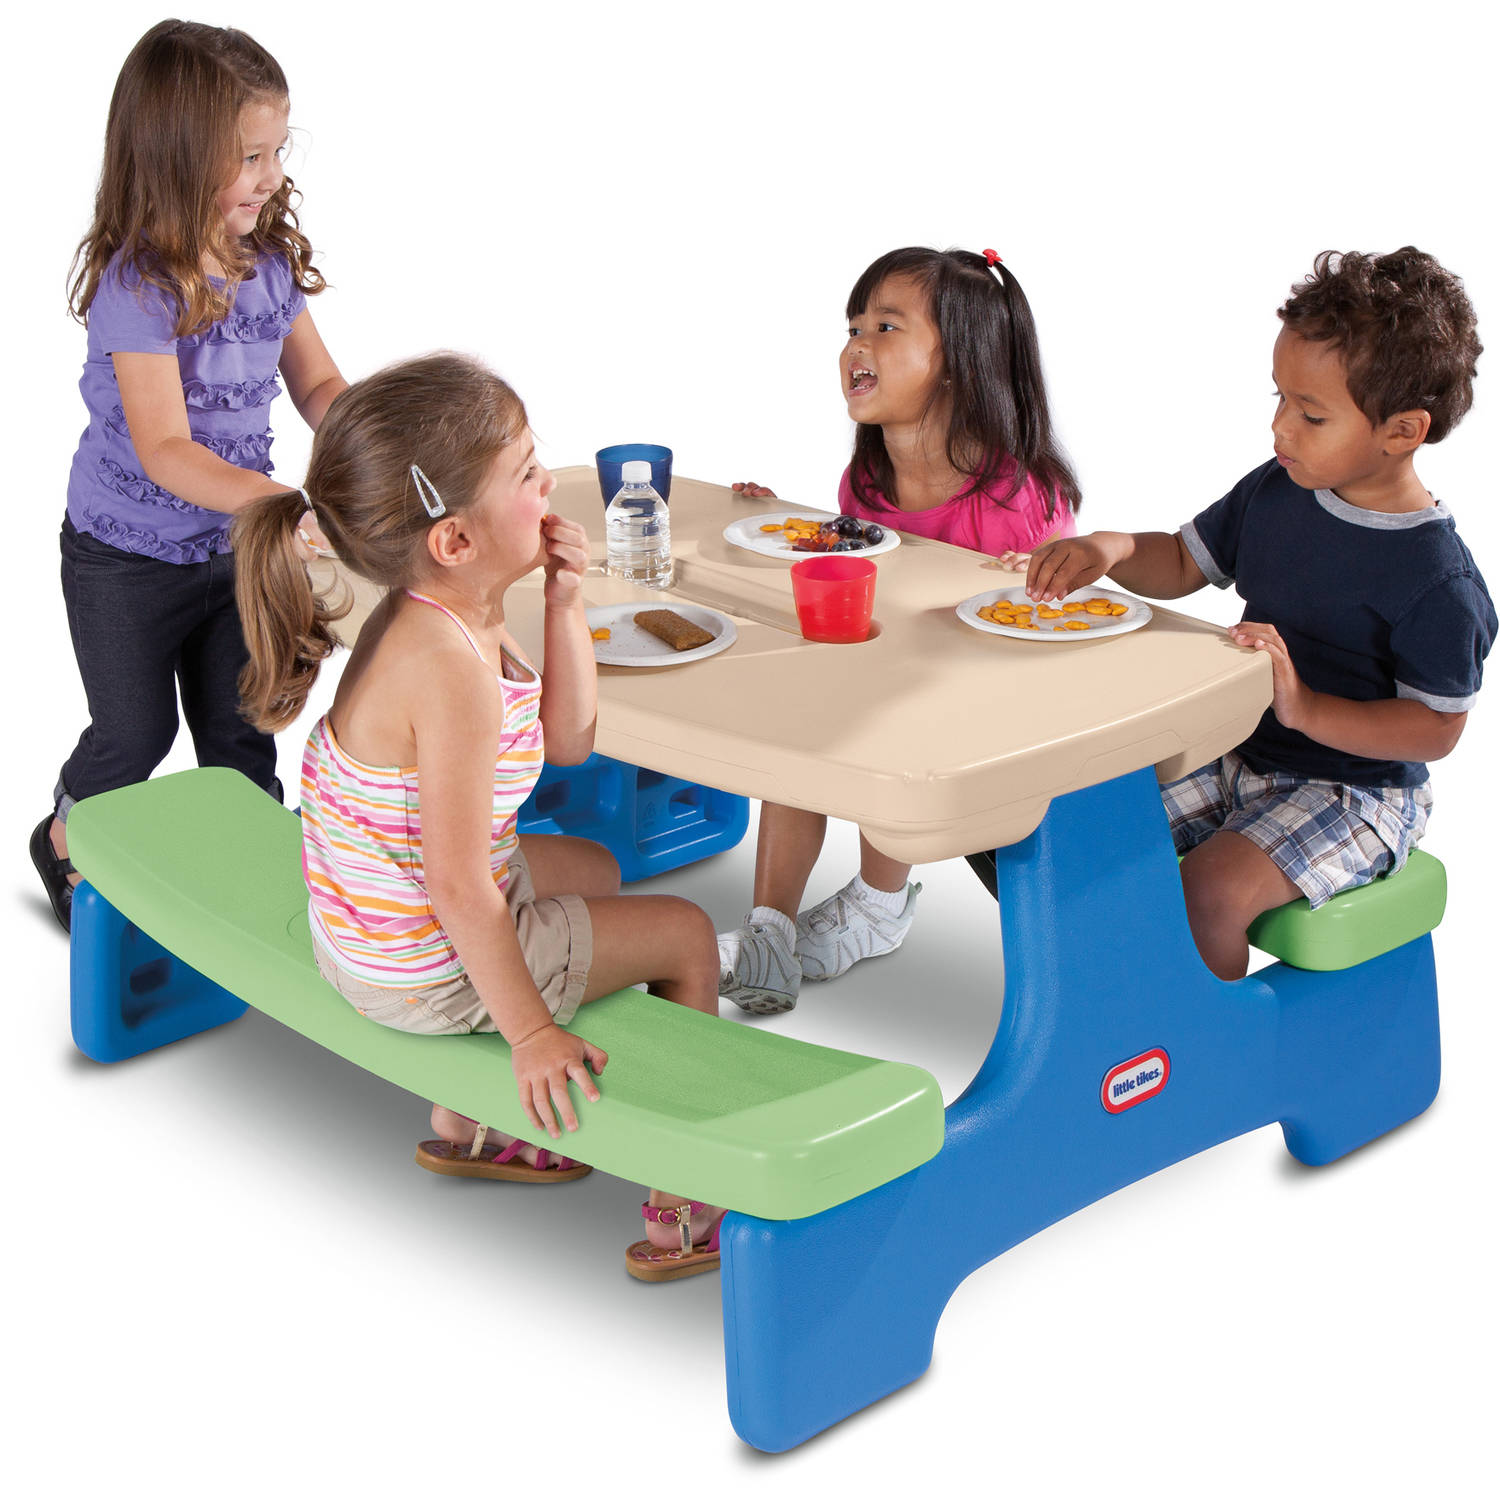 Little Tikes Easy Store Picnic Table, Blue Green by MGA Entertainment